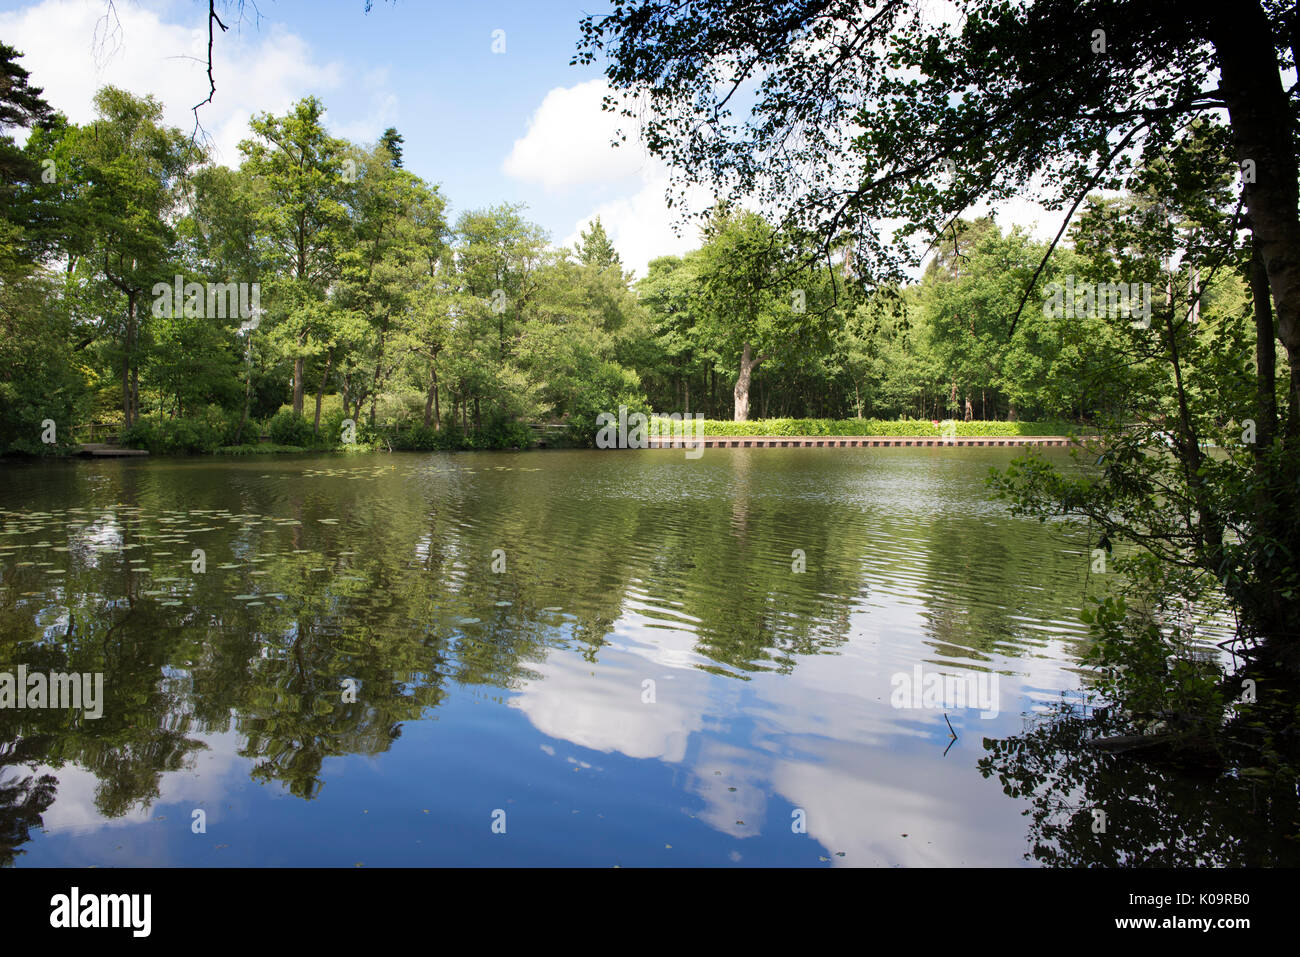 Silt Lake in Tilgate Park in Crawley, West Sussex, England, UK - Stock Image